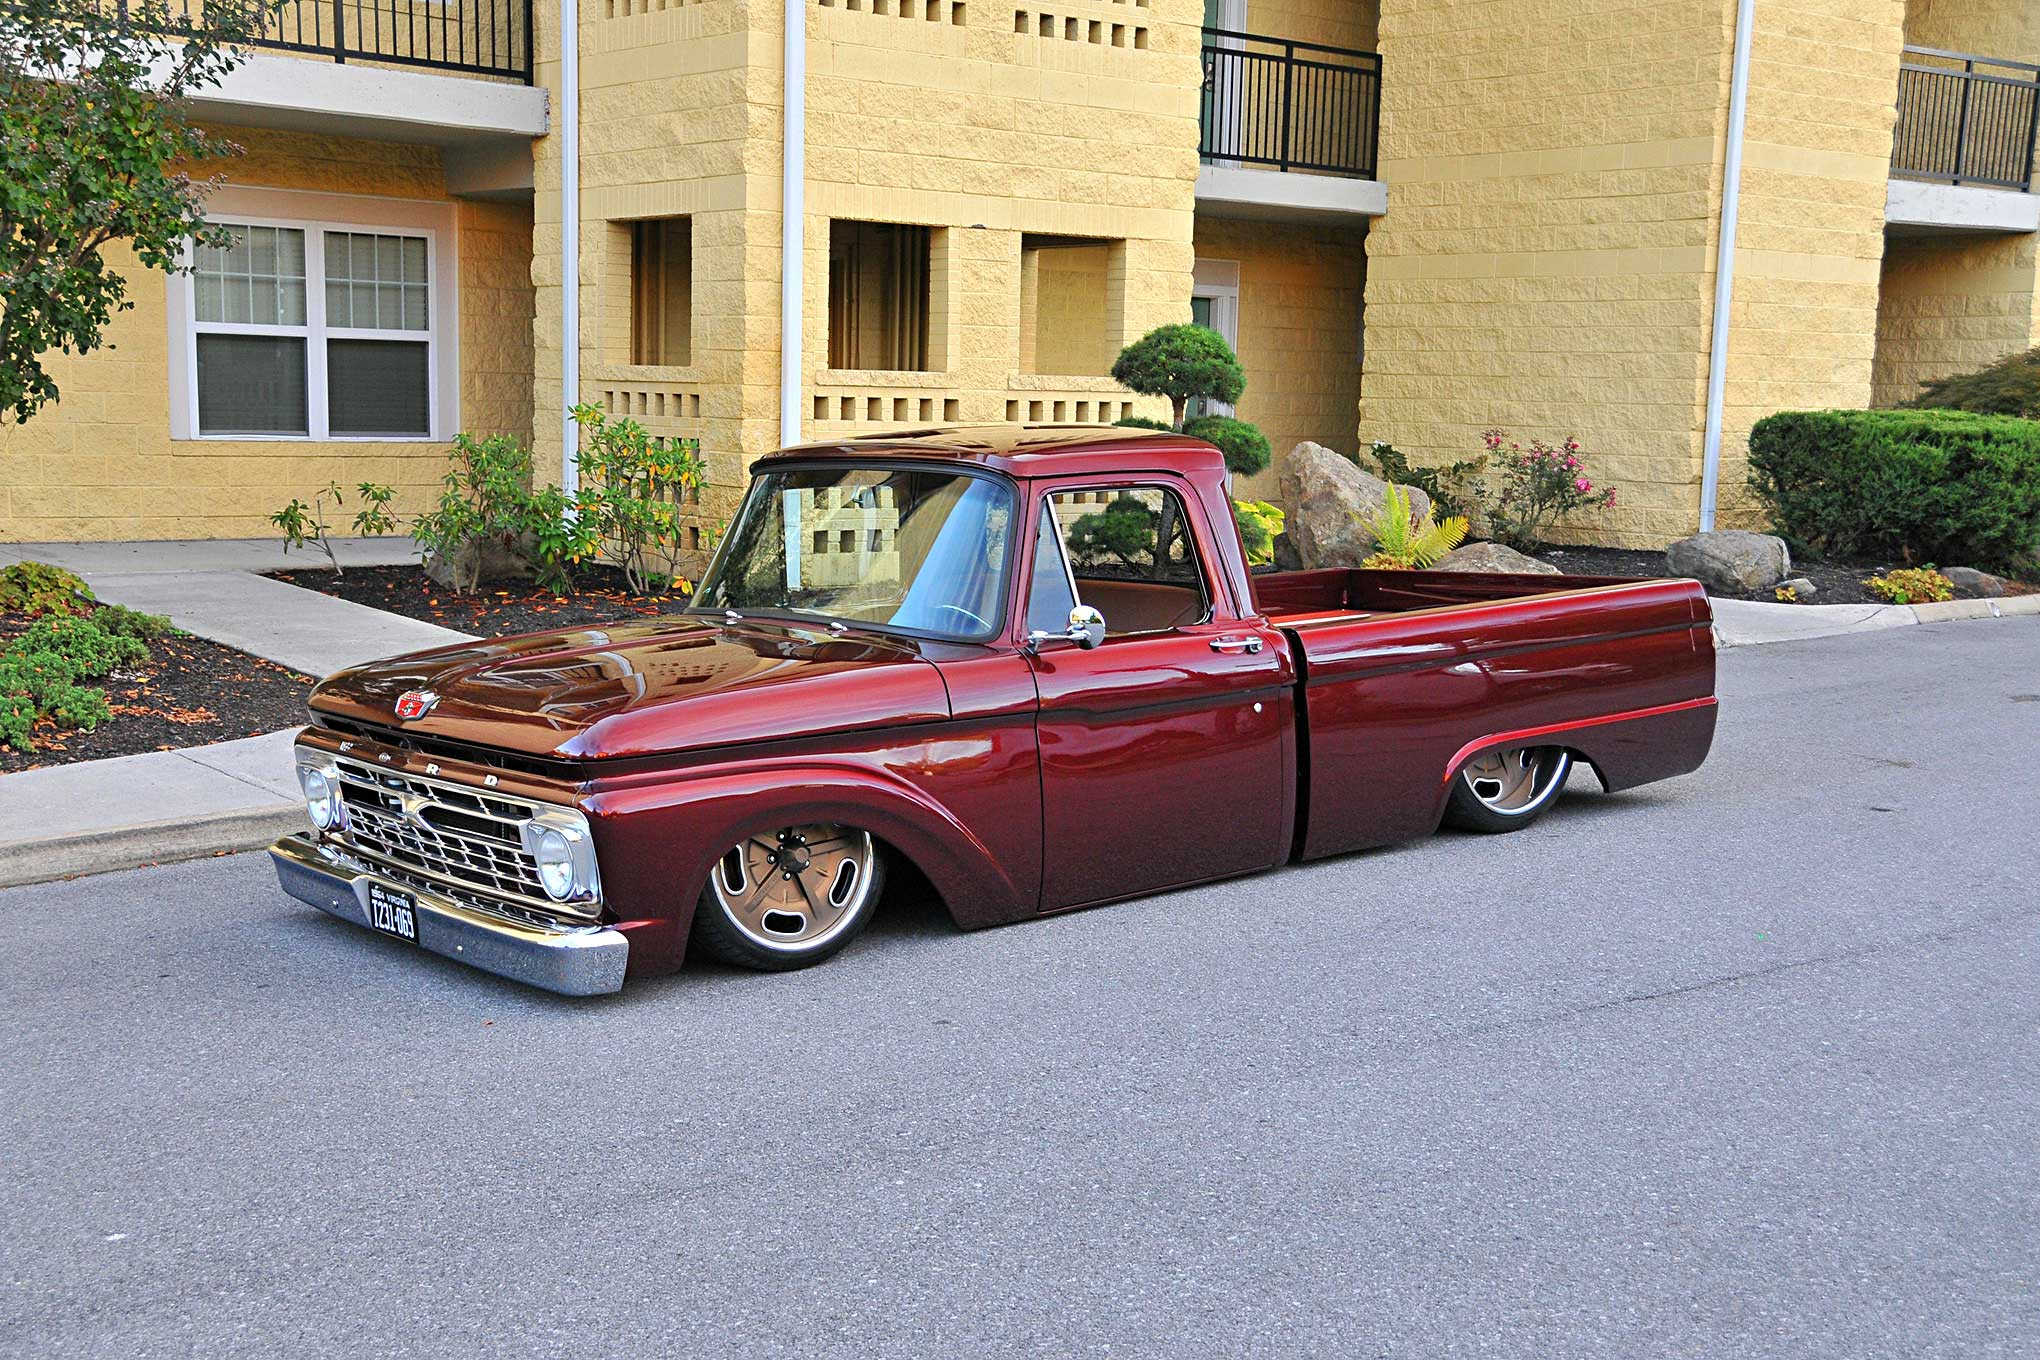 1964 Ford F100 Driver Side Front View Lowrider Pickup Truck About This Editor